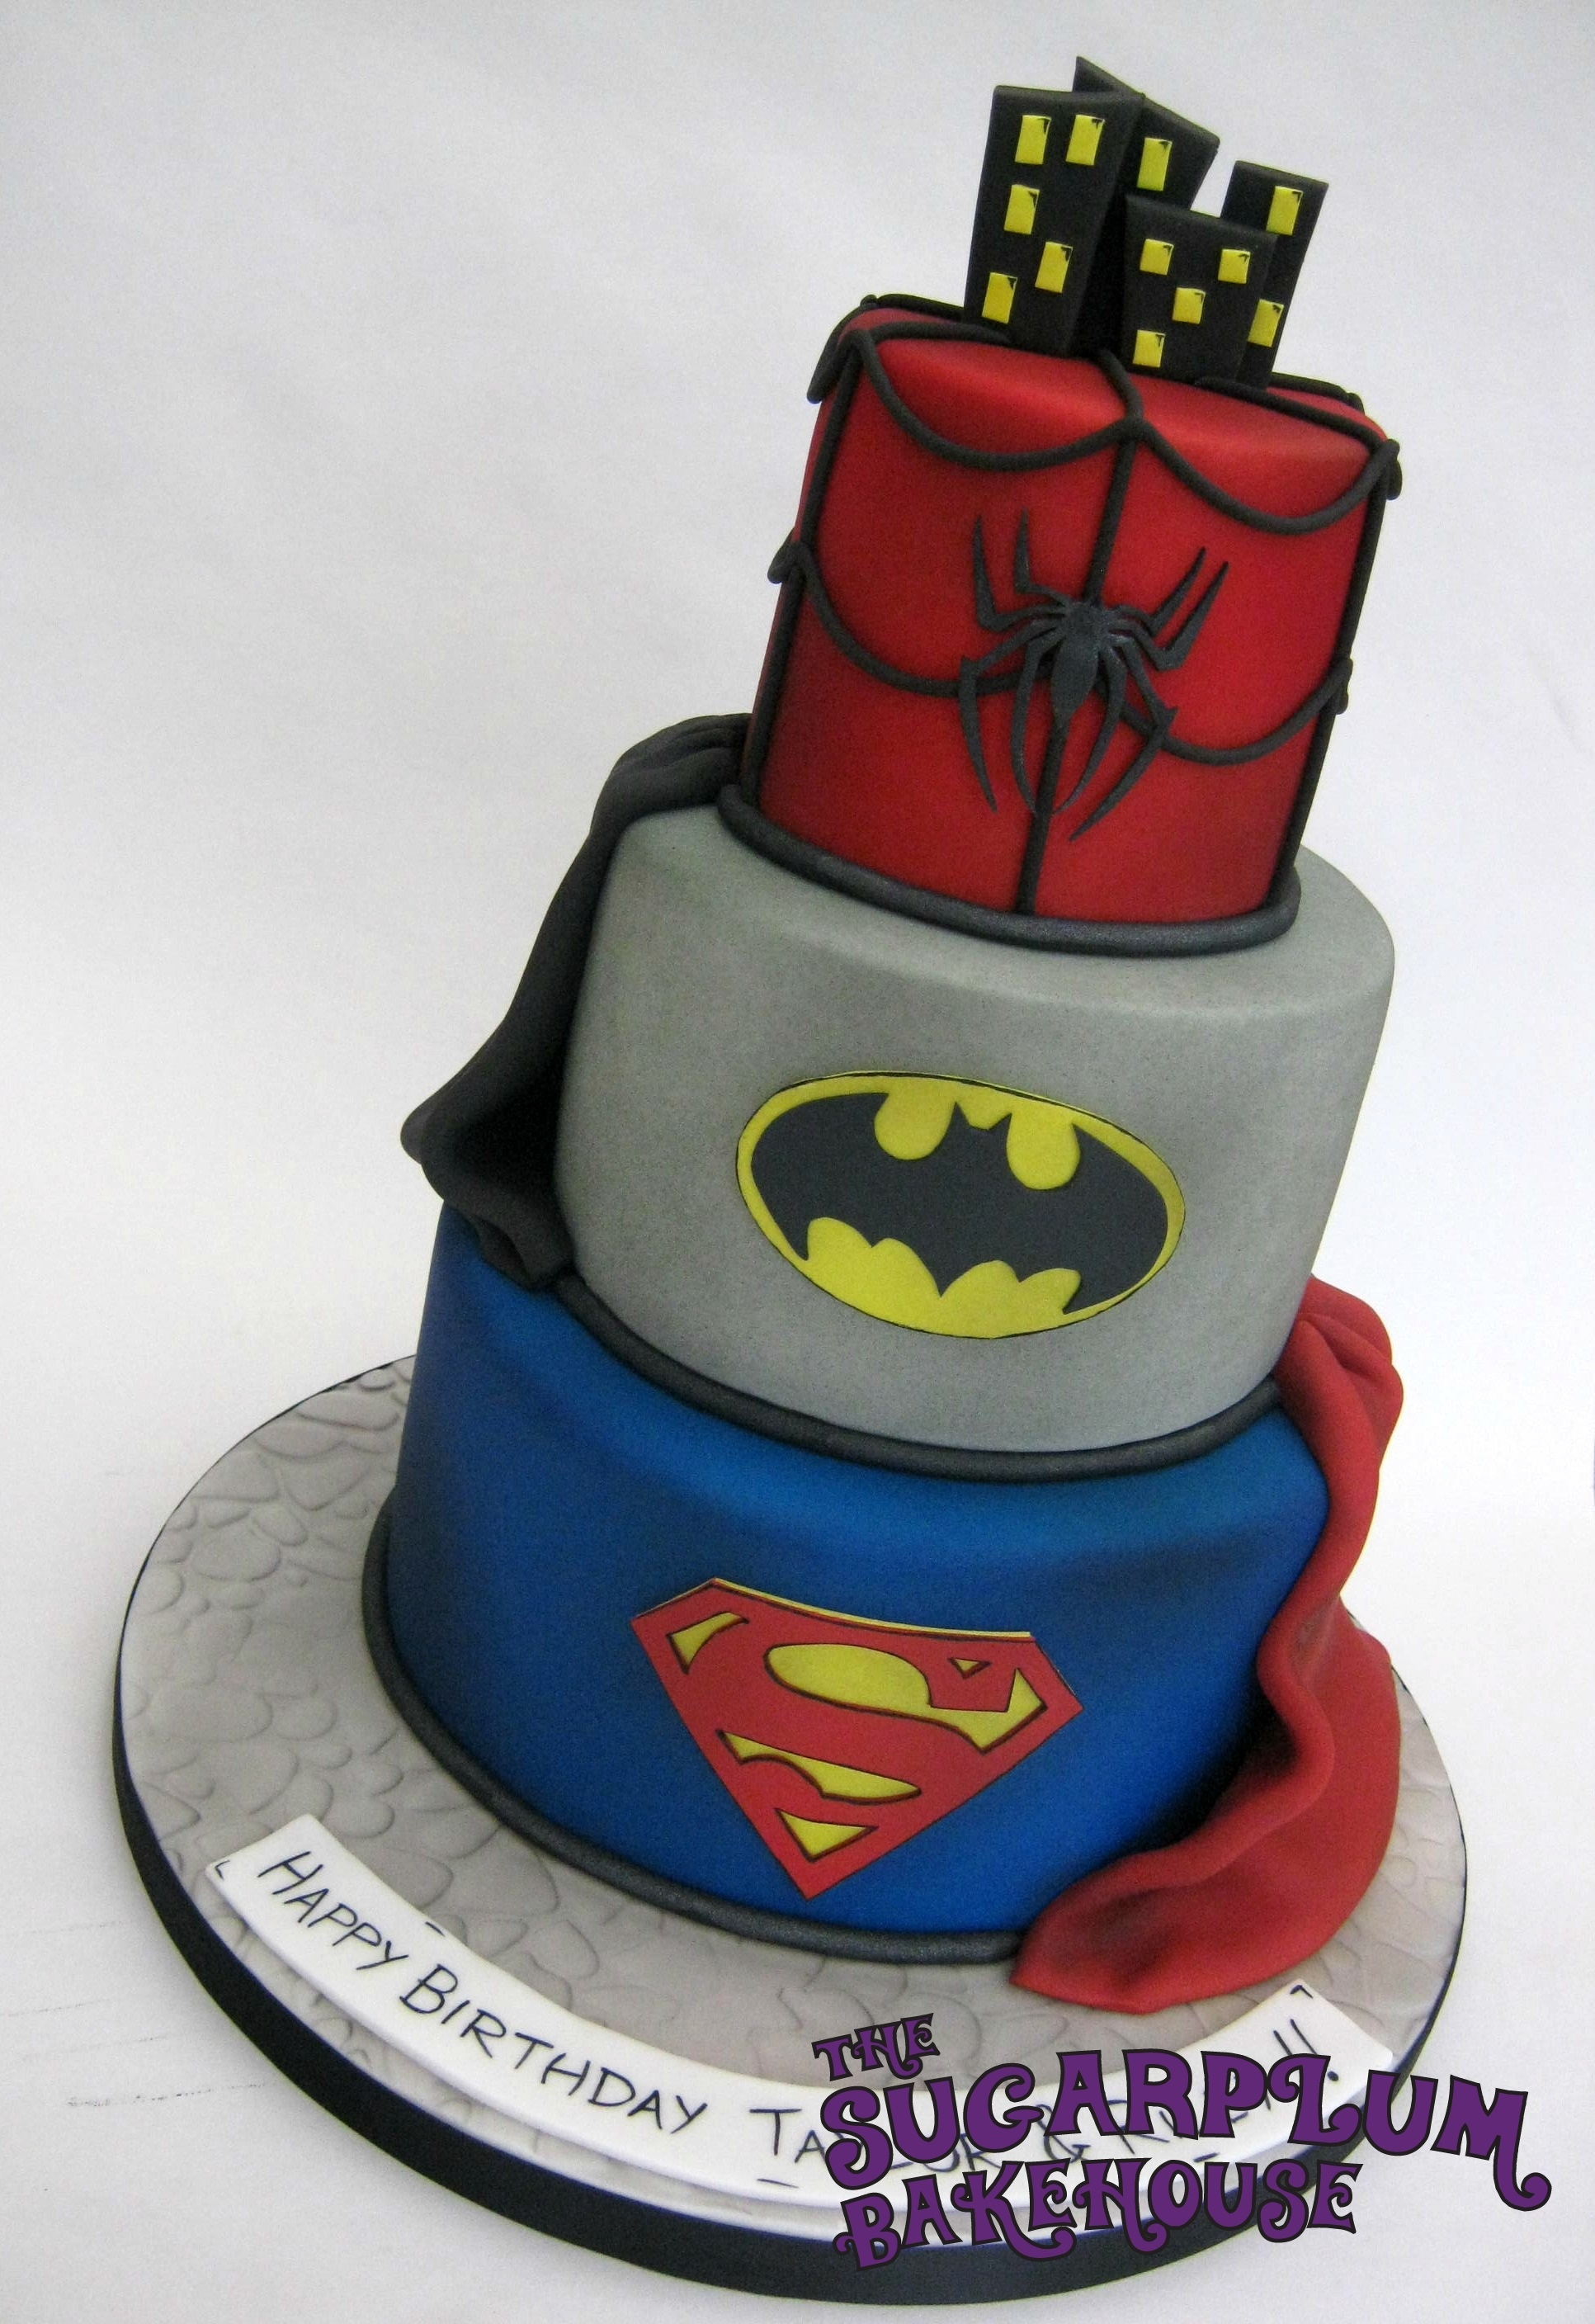 Spiderman Batman And Superman Birthday Cake 4 6 8 Inch Cakes Covered With Fondant Airbrushed All Decoration Is Handmade Cut From Or